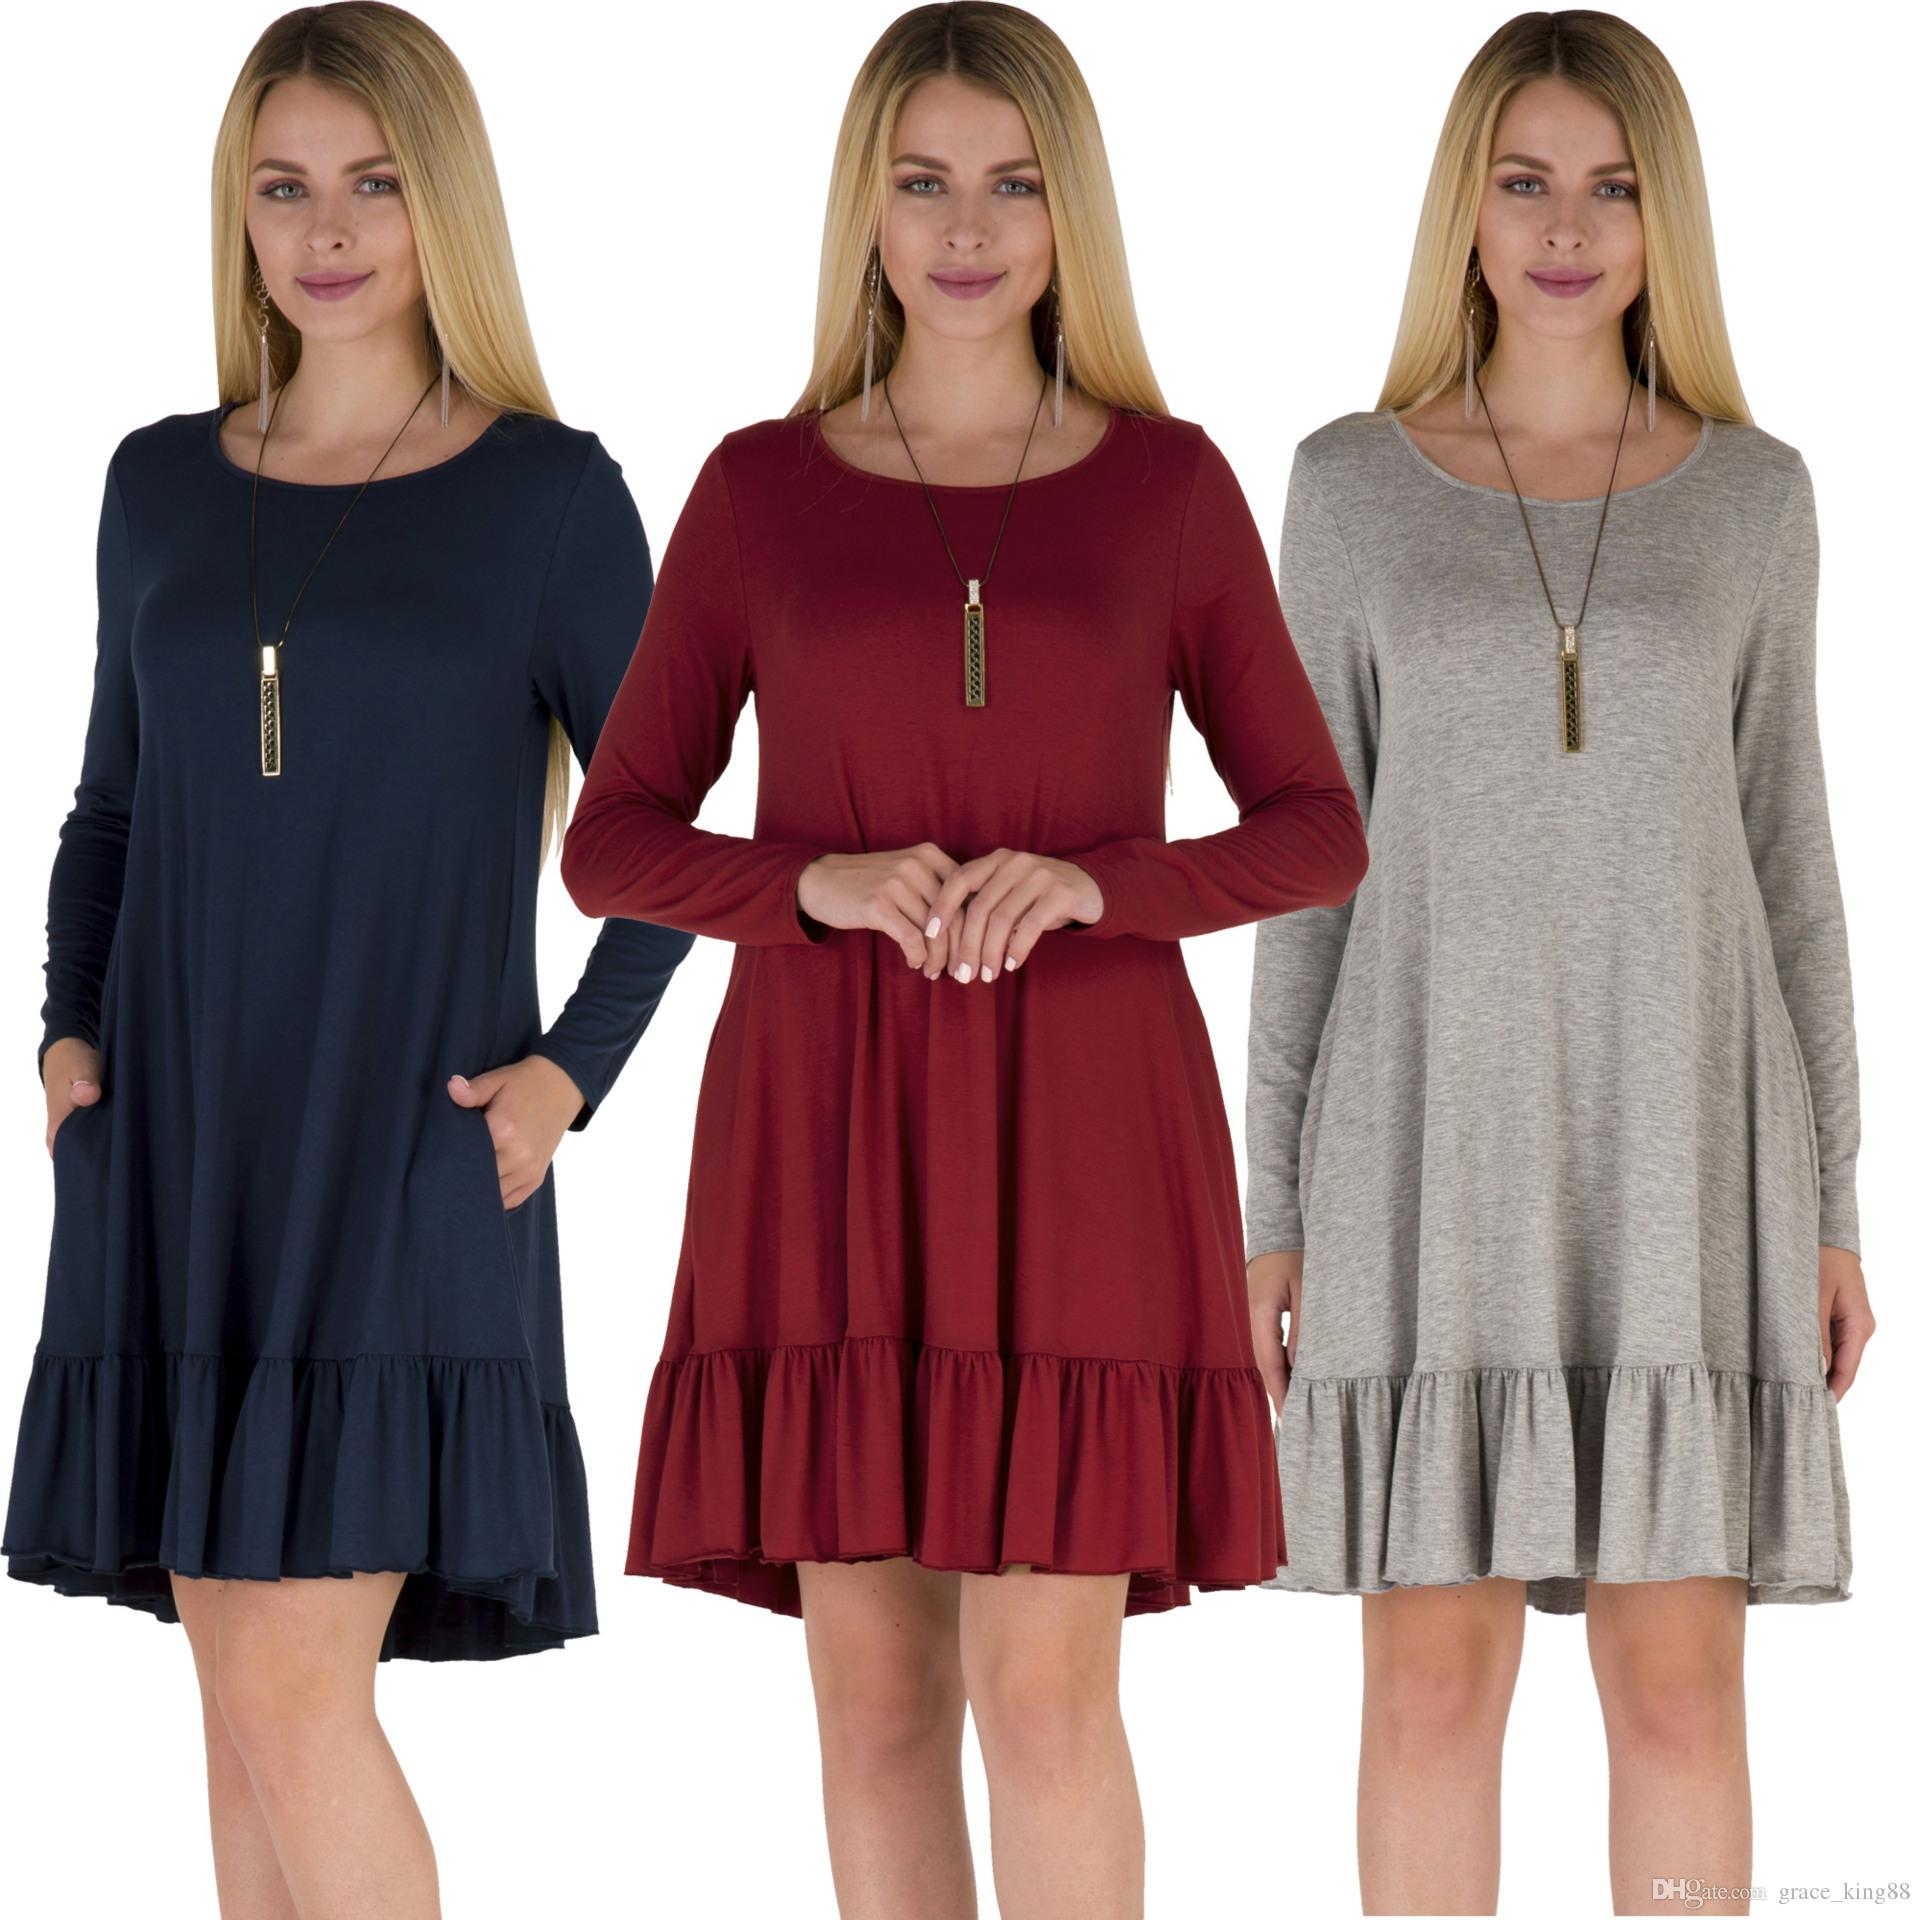 3ff78938a8b Autumn Winter Women S Plus Size Dress XL S Long Sleeve Cotton Casual Loose  Dress Long Sleeve T Shirt Dress Dress For Cocktail Party Long Striped Dress  From ...